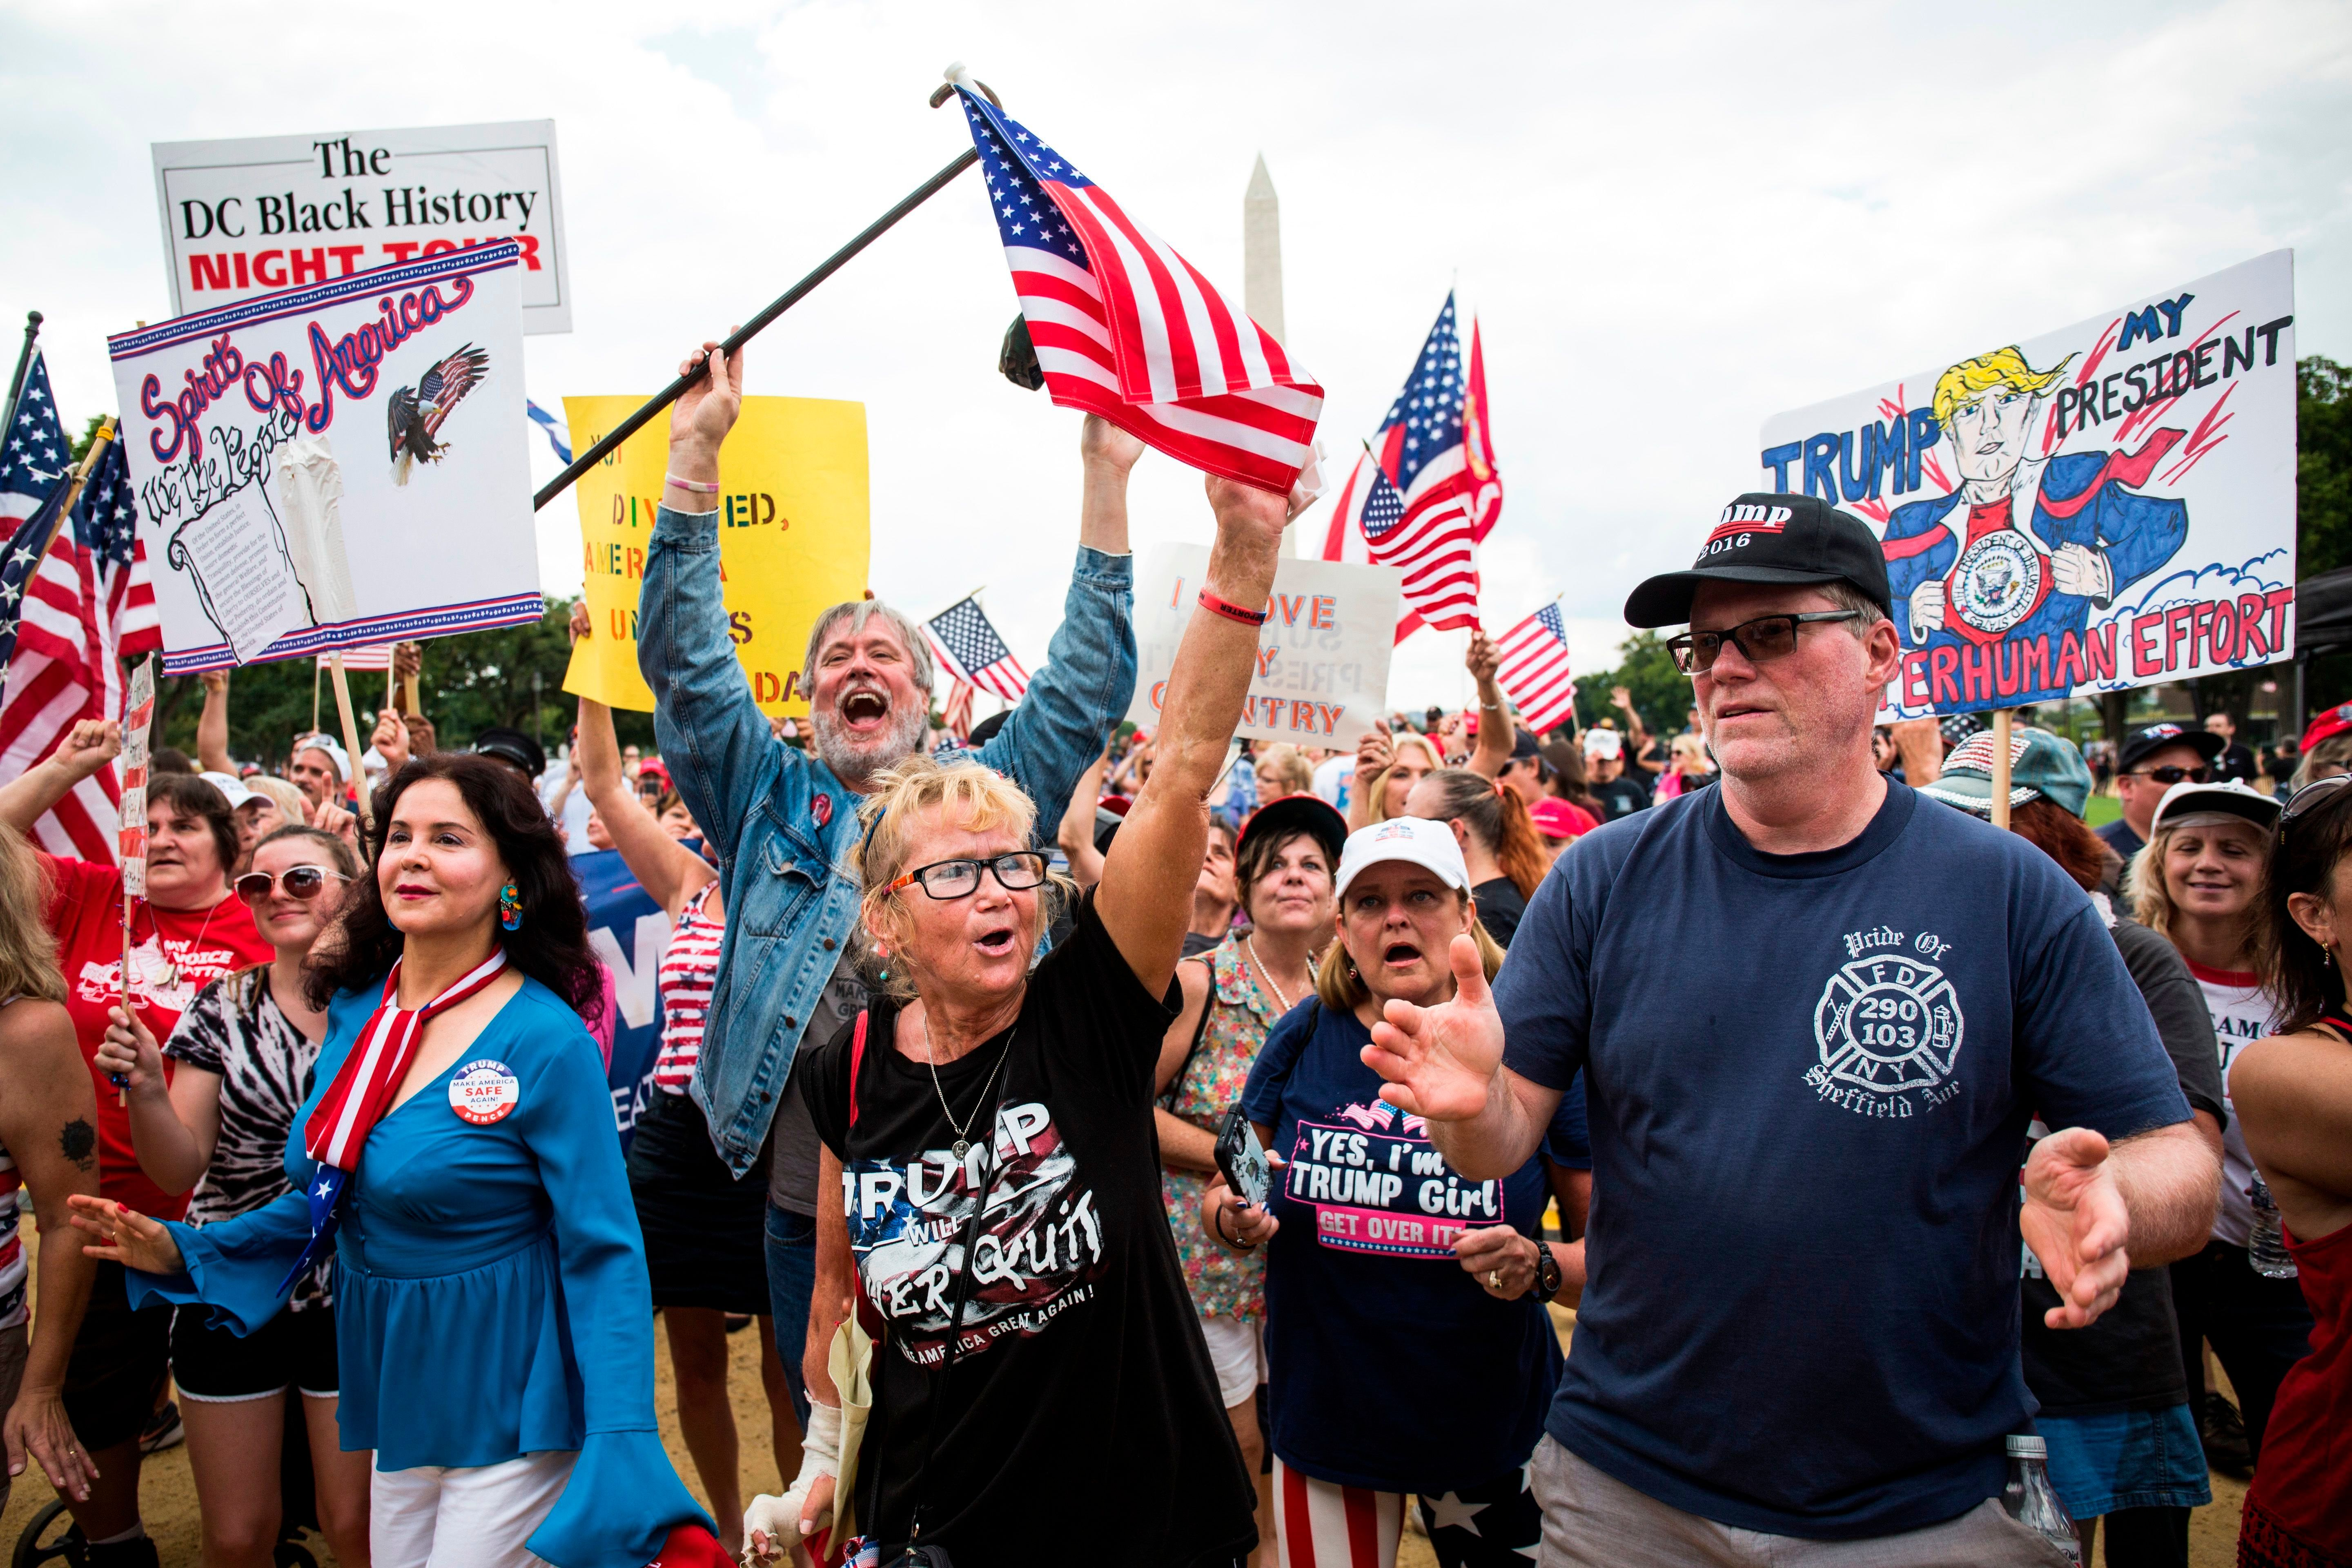 Demonstrators wave national flags and placards during the pro-Trump 'Mother of All Rallies' on the National Mall in Washington, DC on September 16, 2017.   Supporters of President Donald Trump gathered in the US capital to show support of 'free-speech' dubbed the Mother of All Rallies. / AFP PHOTO / ZACH GIBSON        (Photo credit should read ZACH GIBSON/AFP/Getty Images)